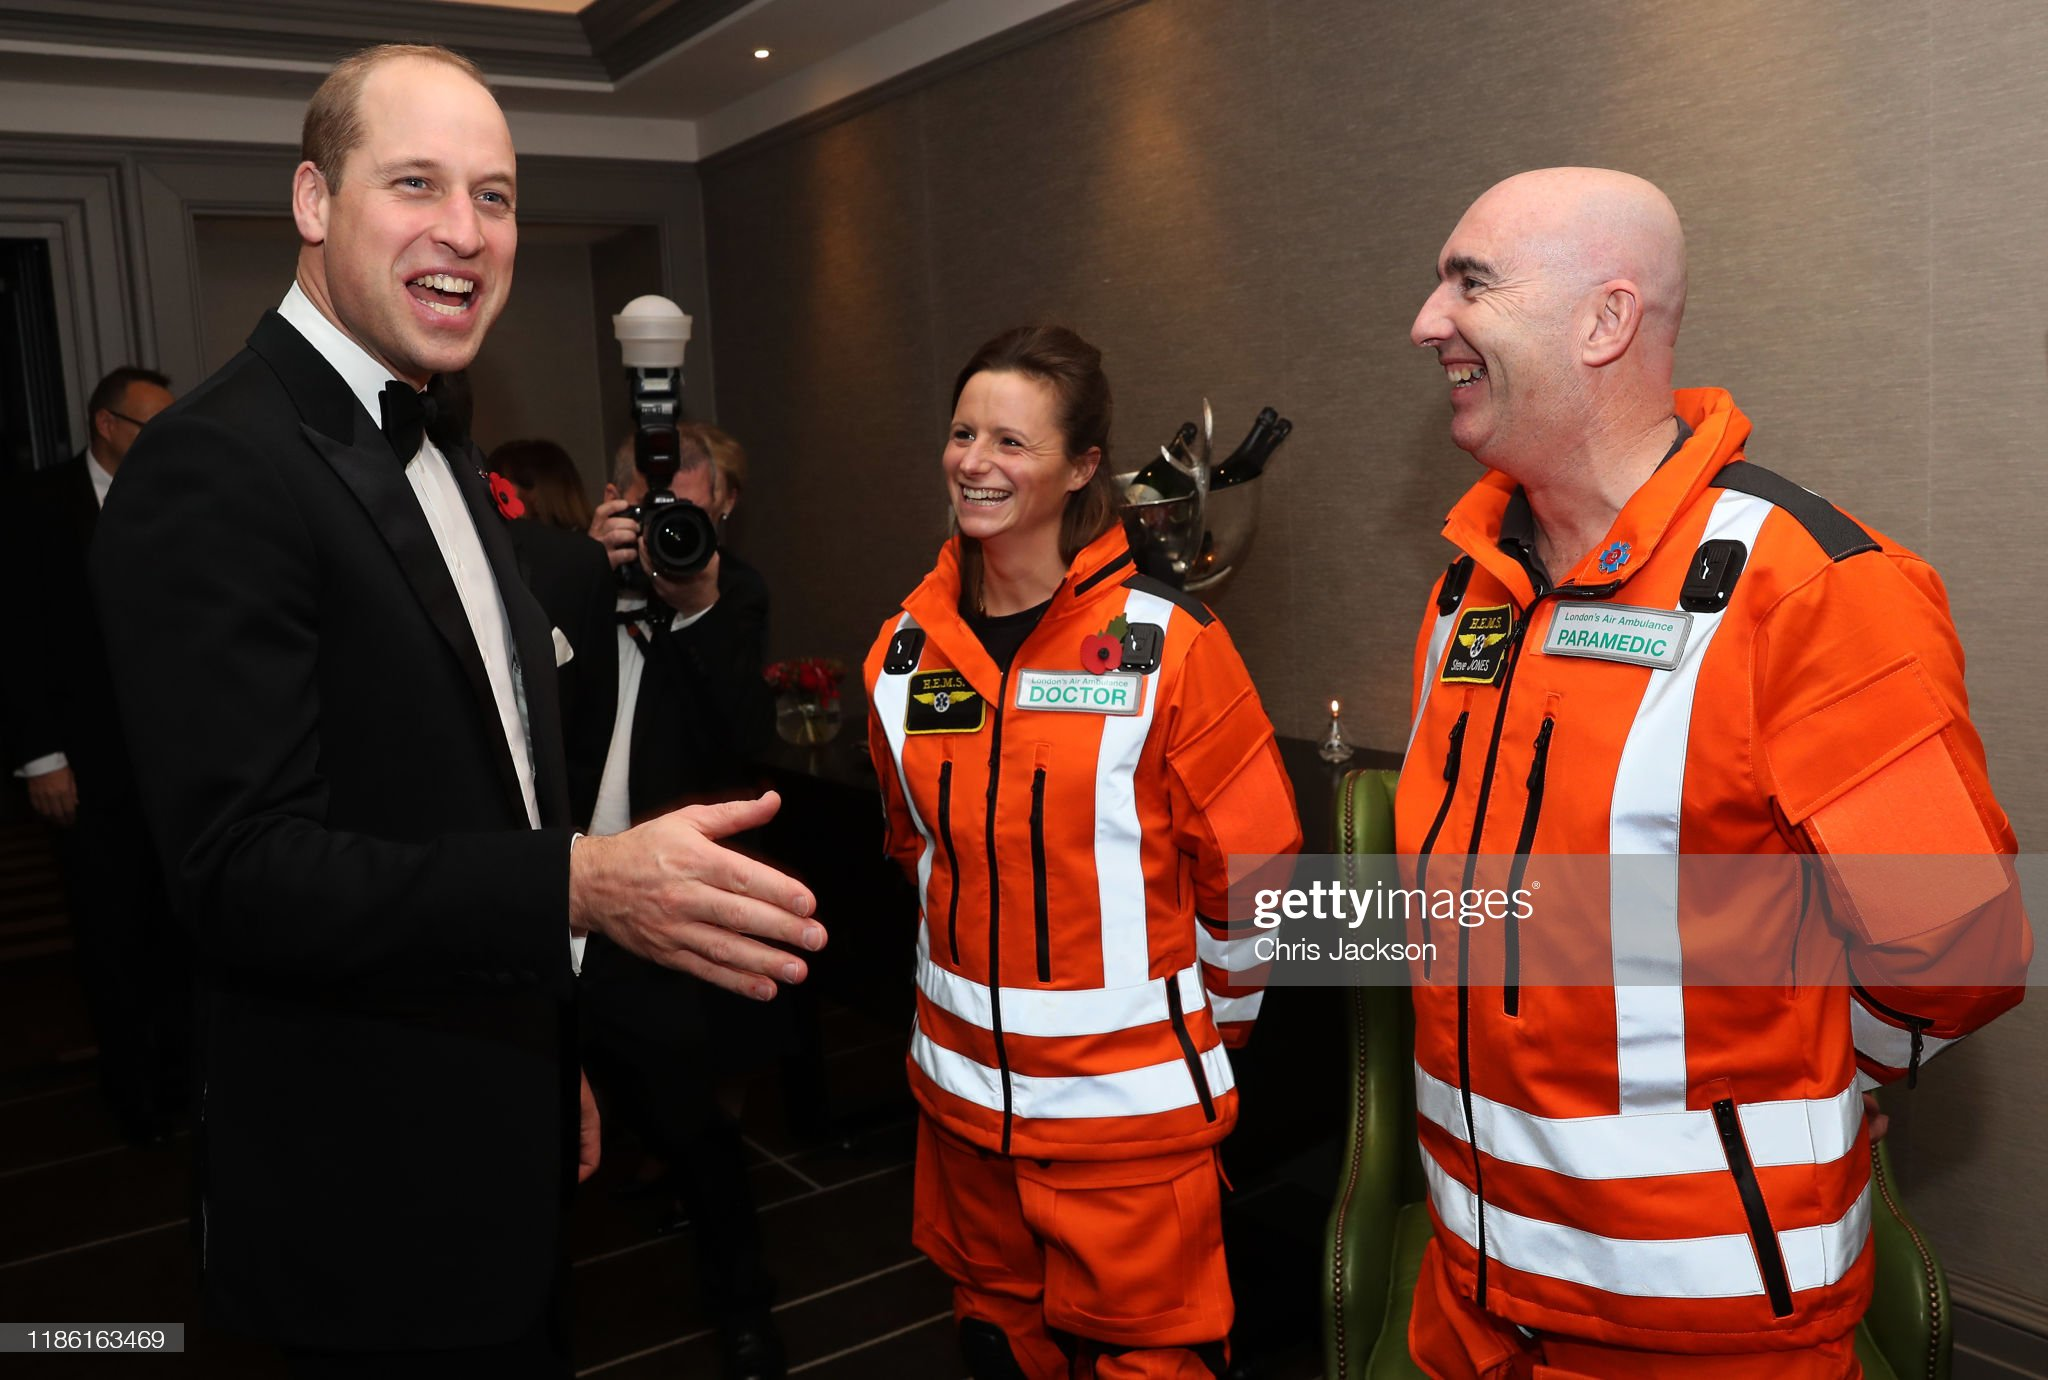 prince-william-duke-of-cambridge-shares-a-joke-with-doctor-flora-bird-picture-id1186163469